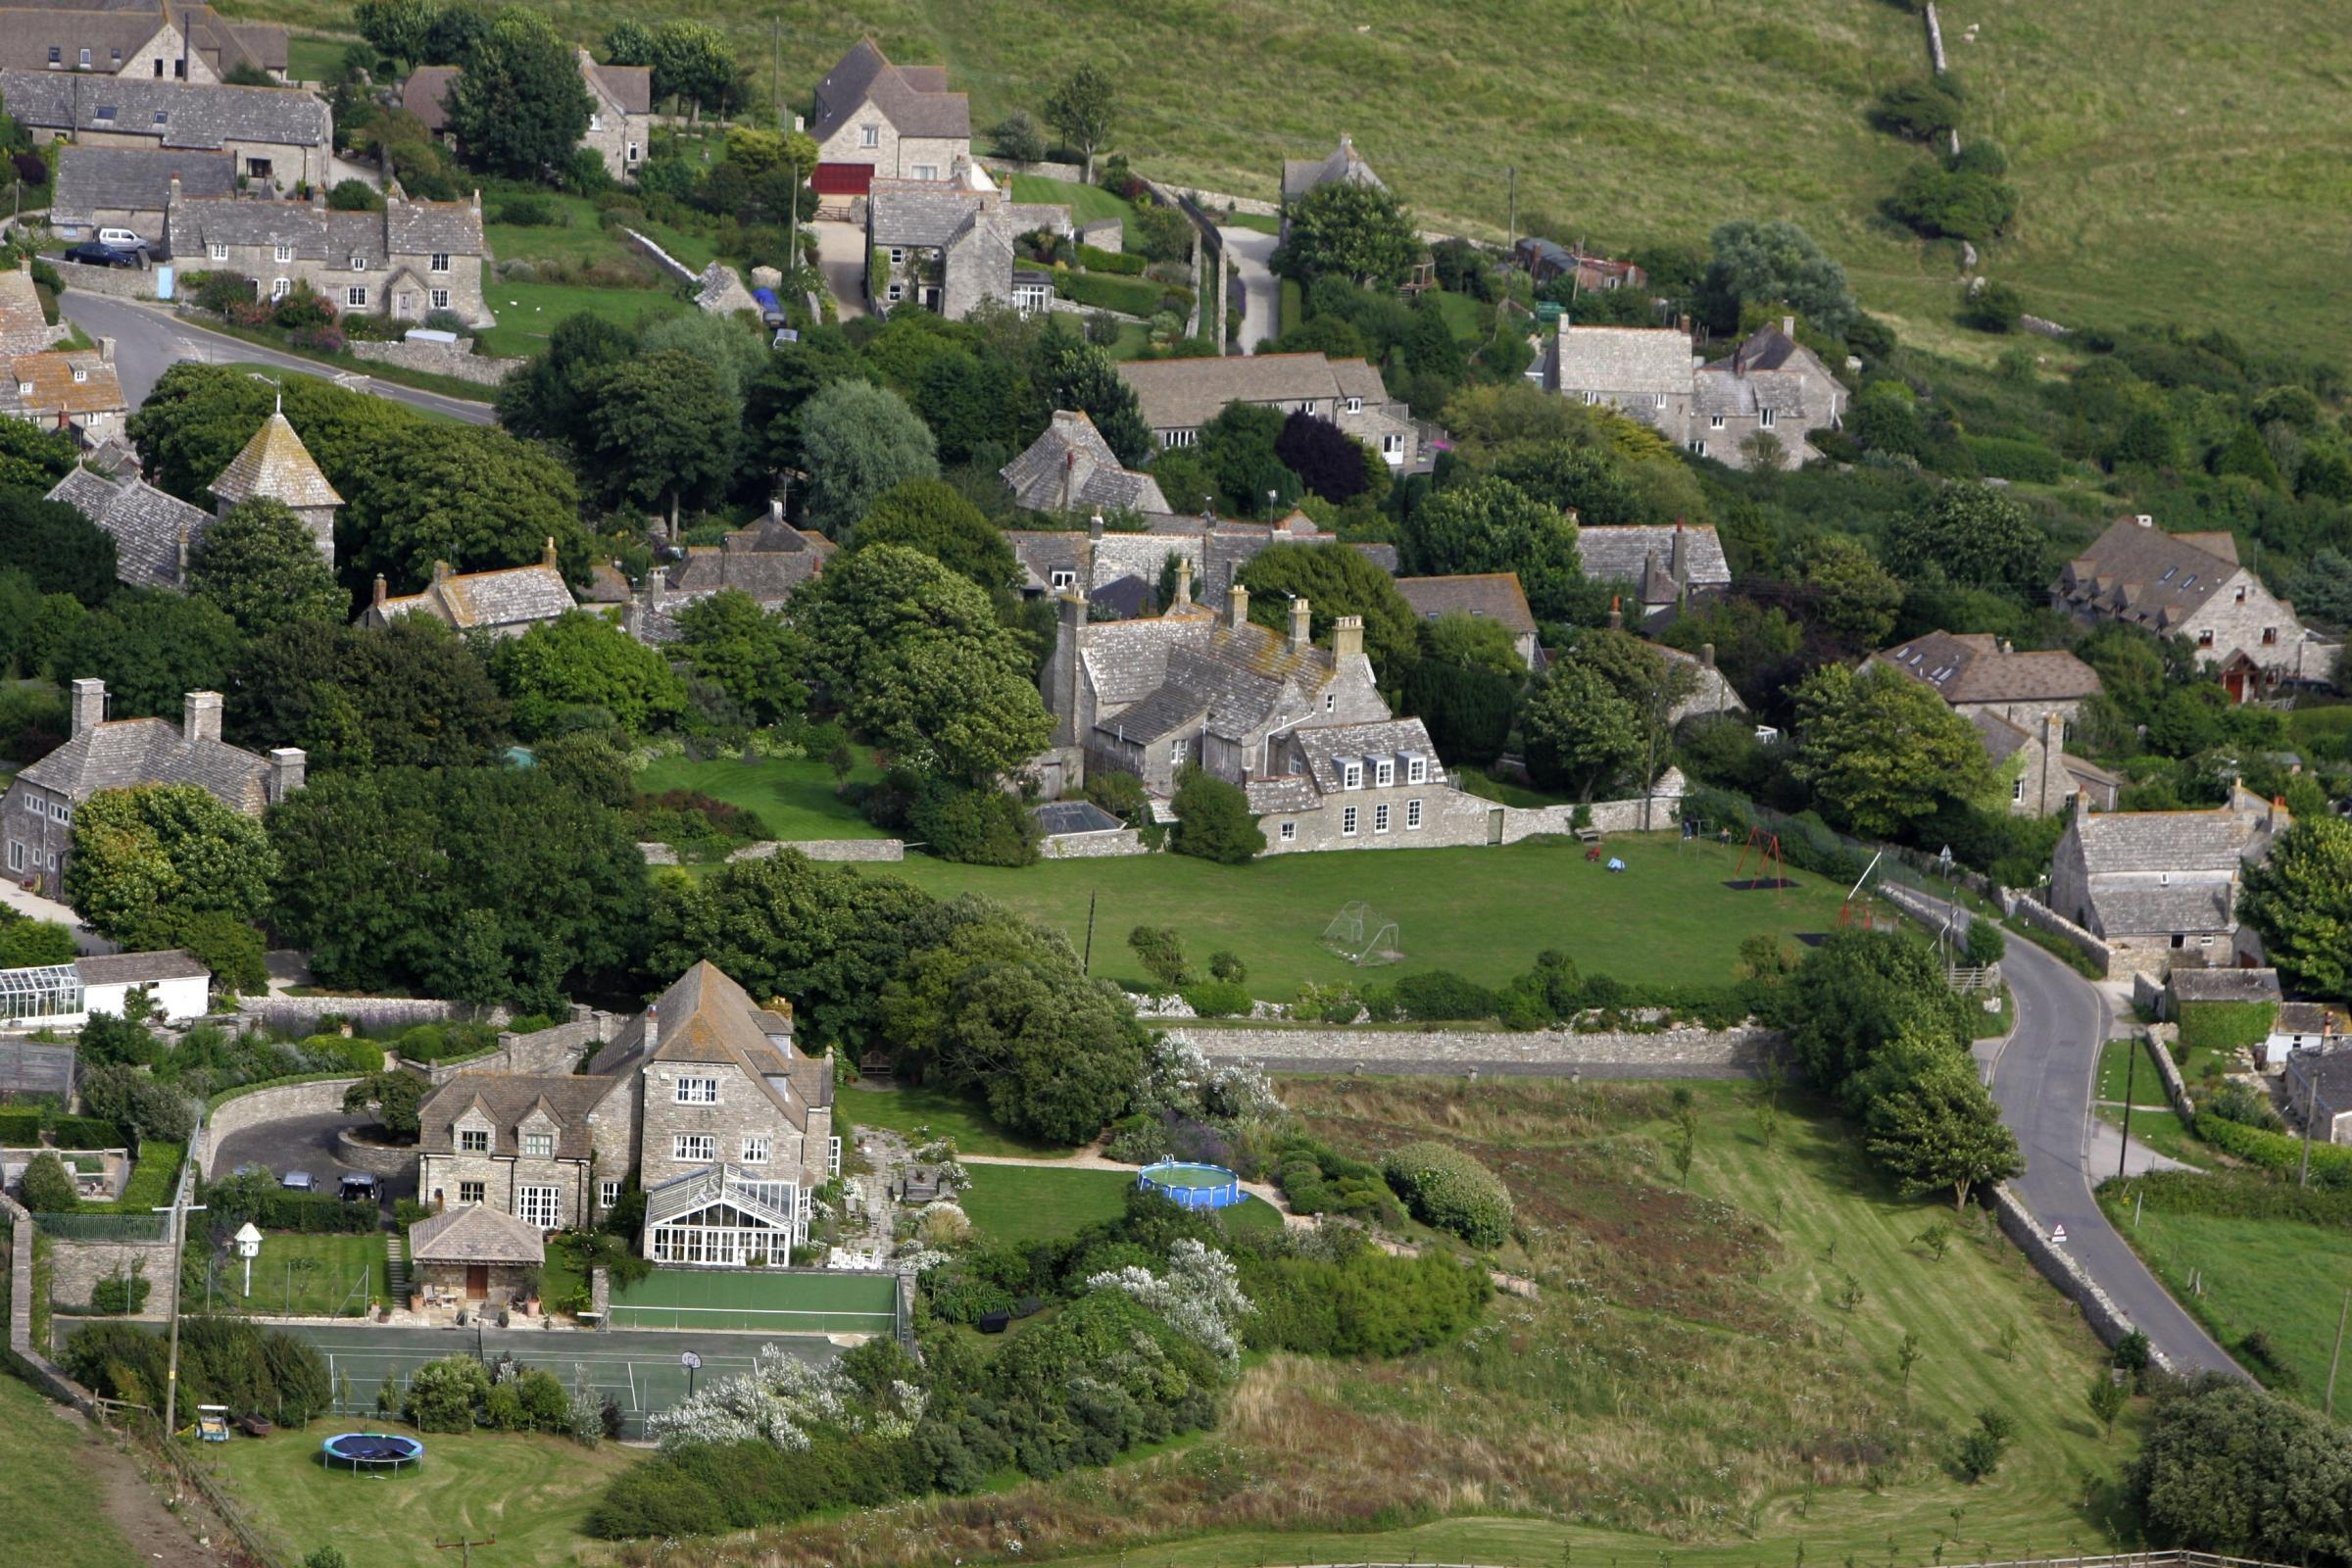 Ancient barrow in Purbeck added to Historic England's Heritage at Risk Register